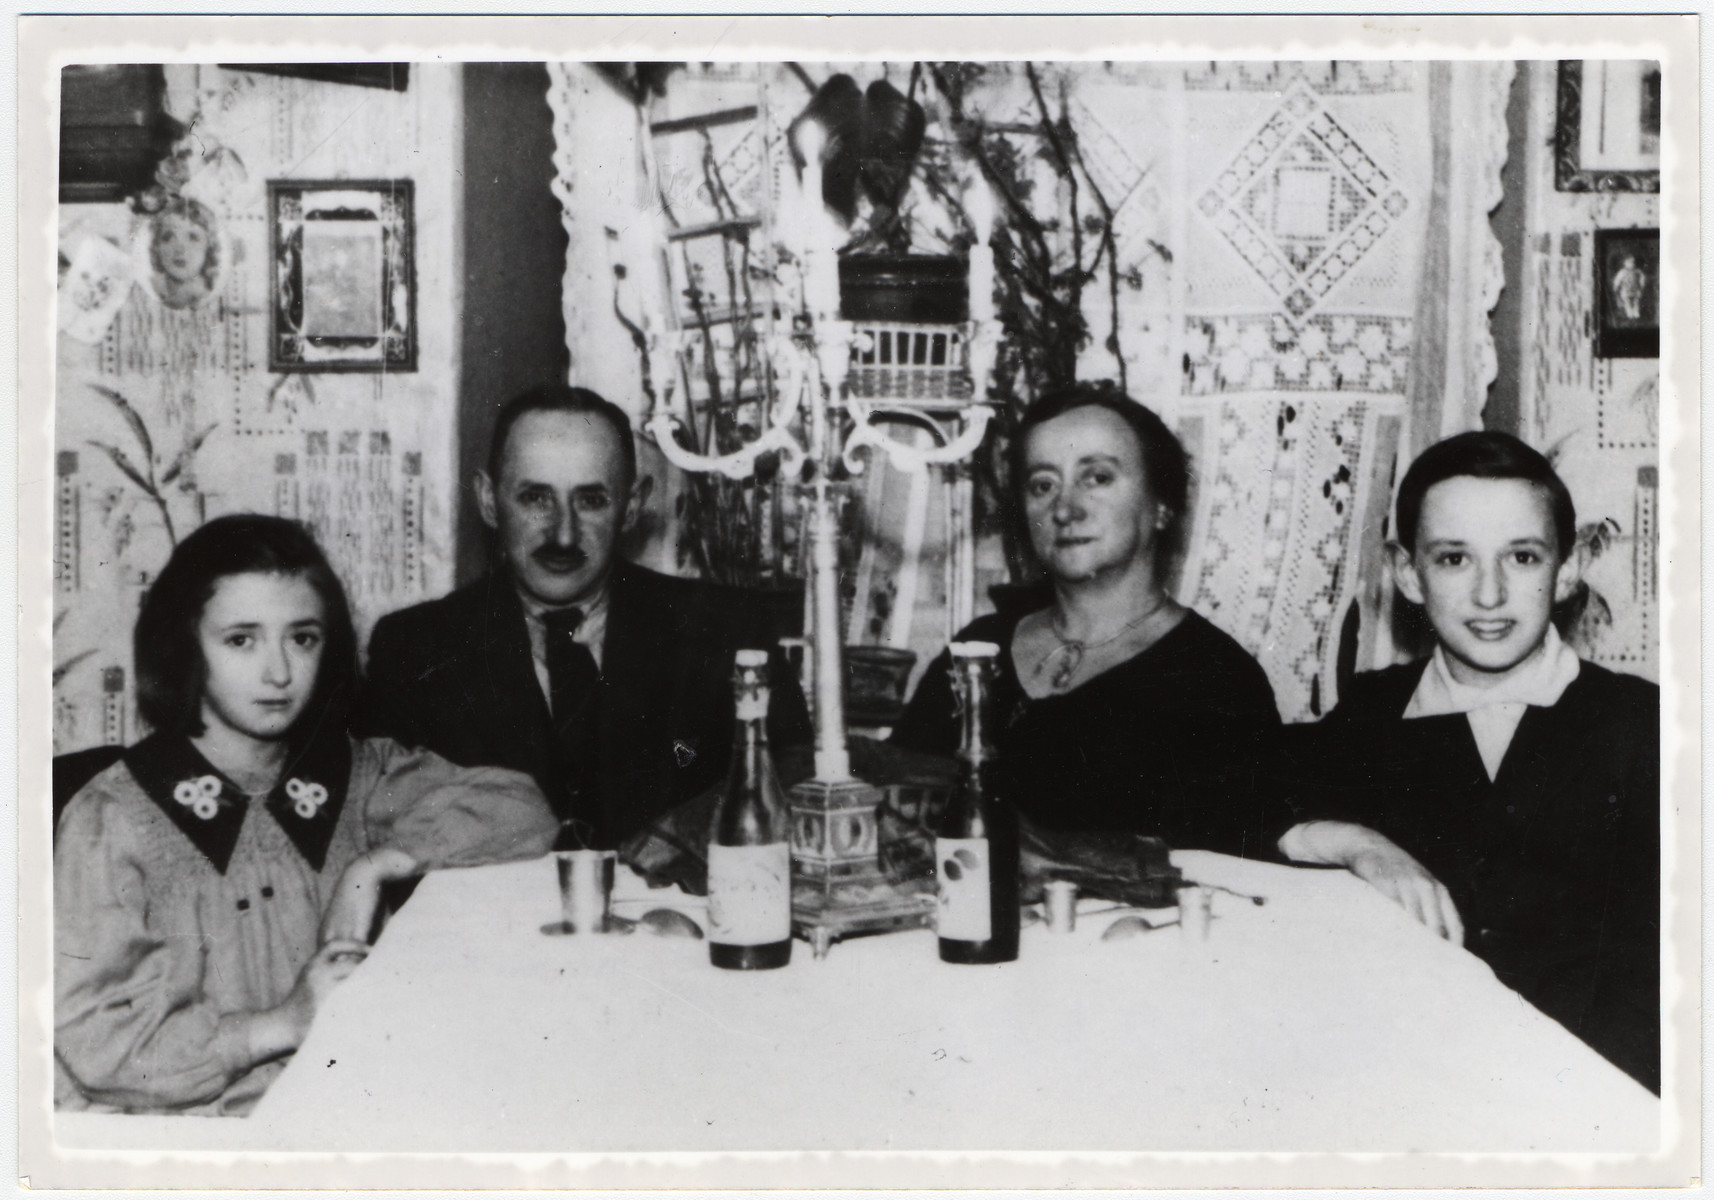 The Megdal family sits around a Sabbath table with challah, wine and candles shortly before the start of World War II.  Pictured from left to right are Perla, Behr-Efraim Dov, Brucha and Meyer Megdal.